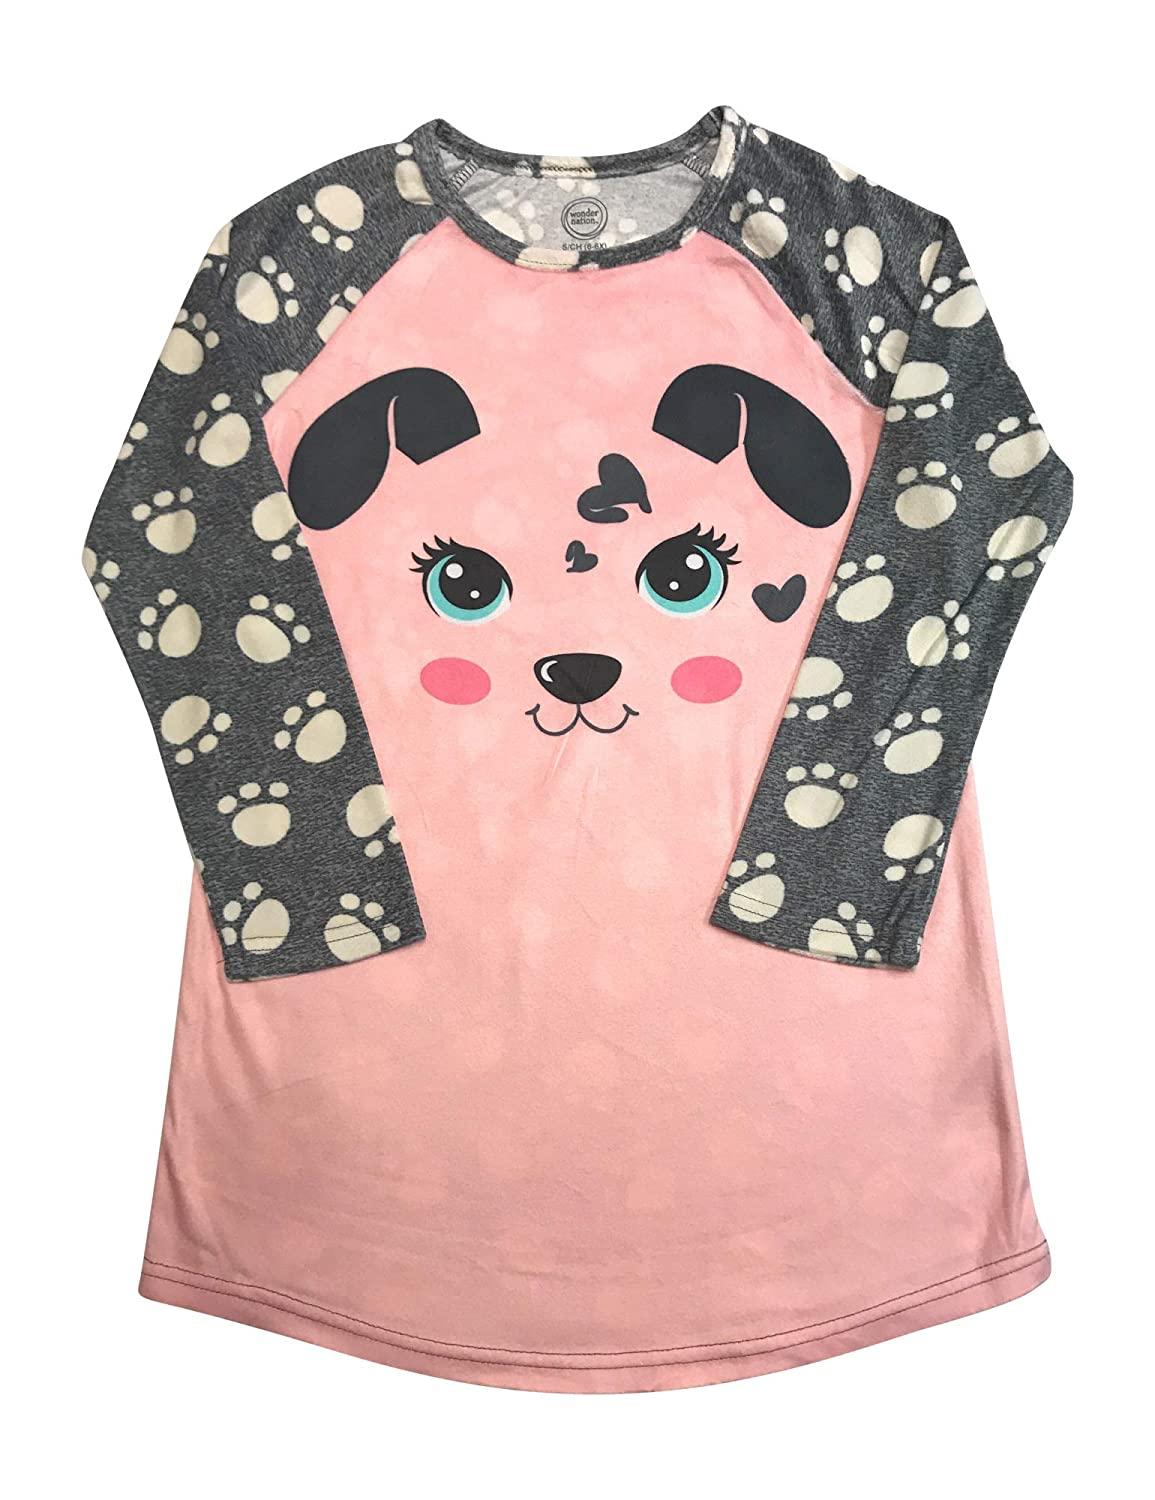 Long Sleeved Fleece Girls Nightgown Pajamas with Panda, Unicorn, and More Styles